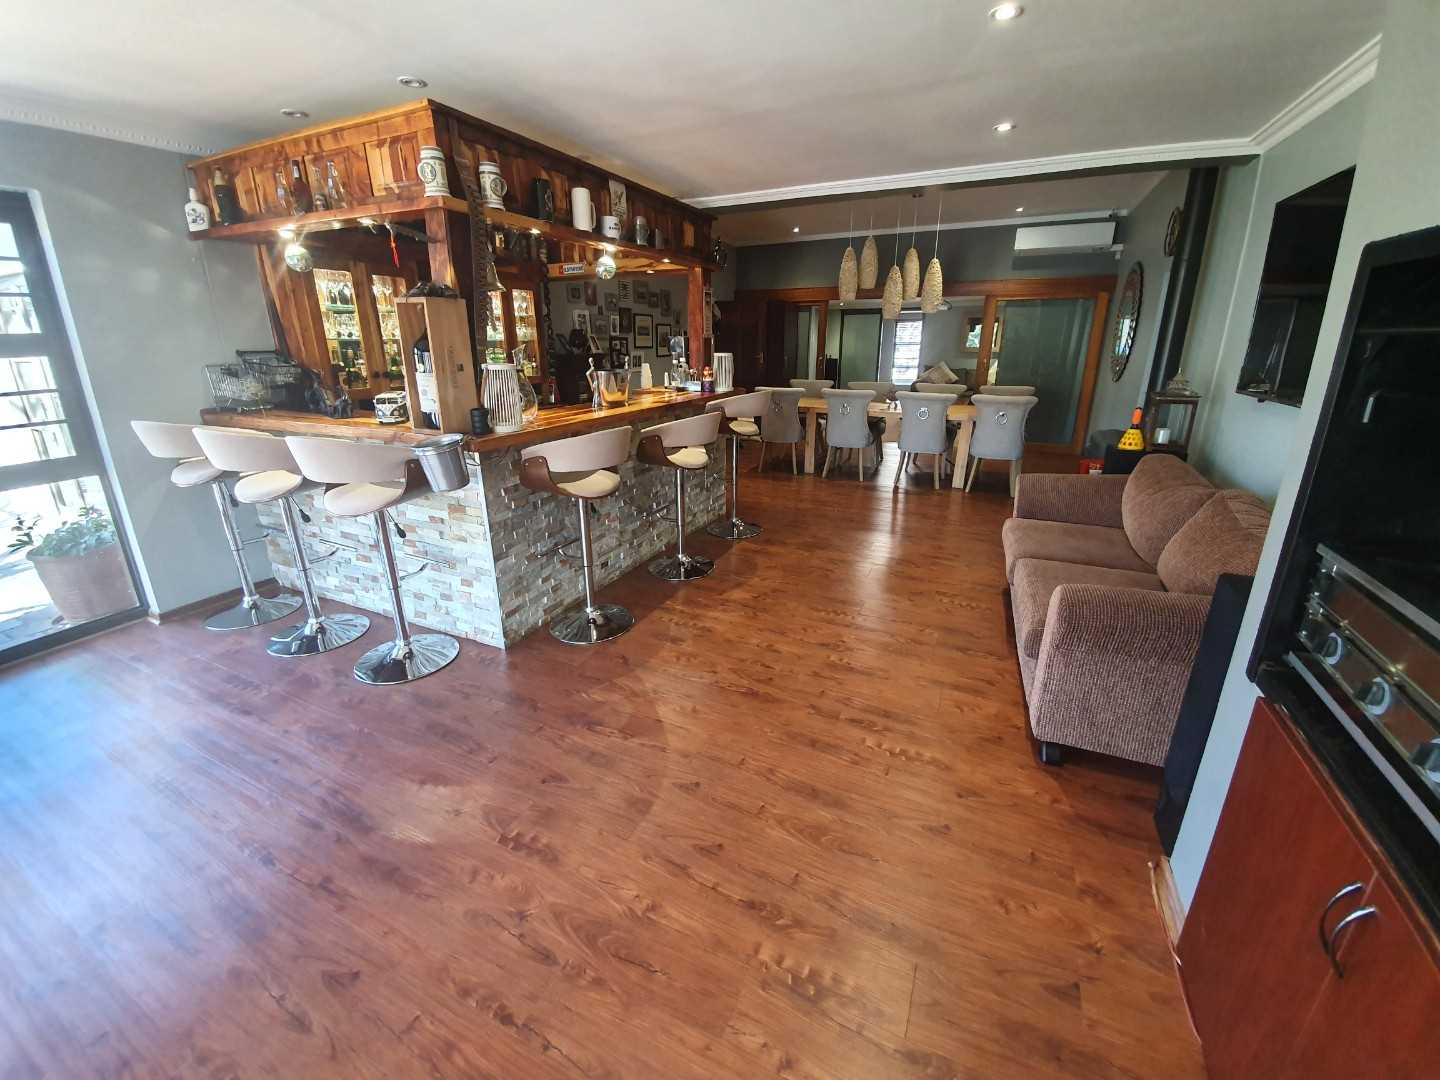 Loads of atmosphere in this amazing home, through this ideal entertainment area with gas braai and build in braai. Also an amazing build in wine-fridge!